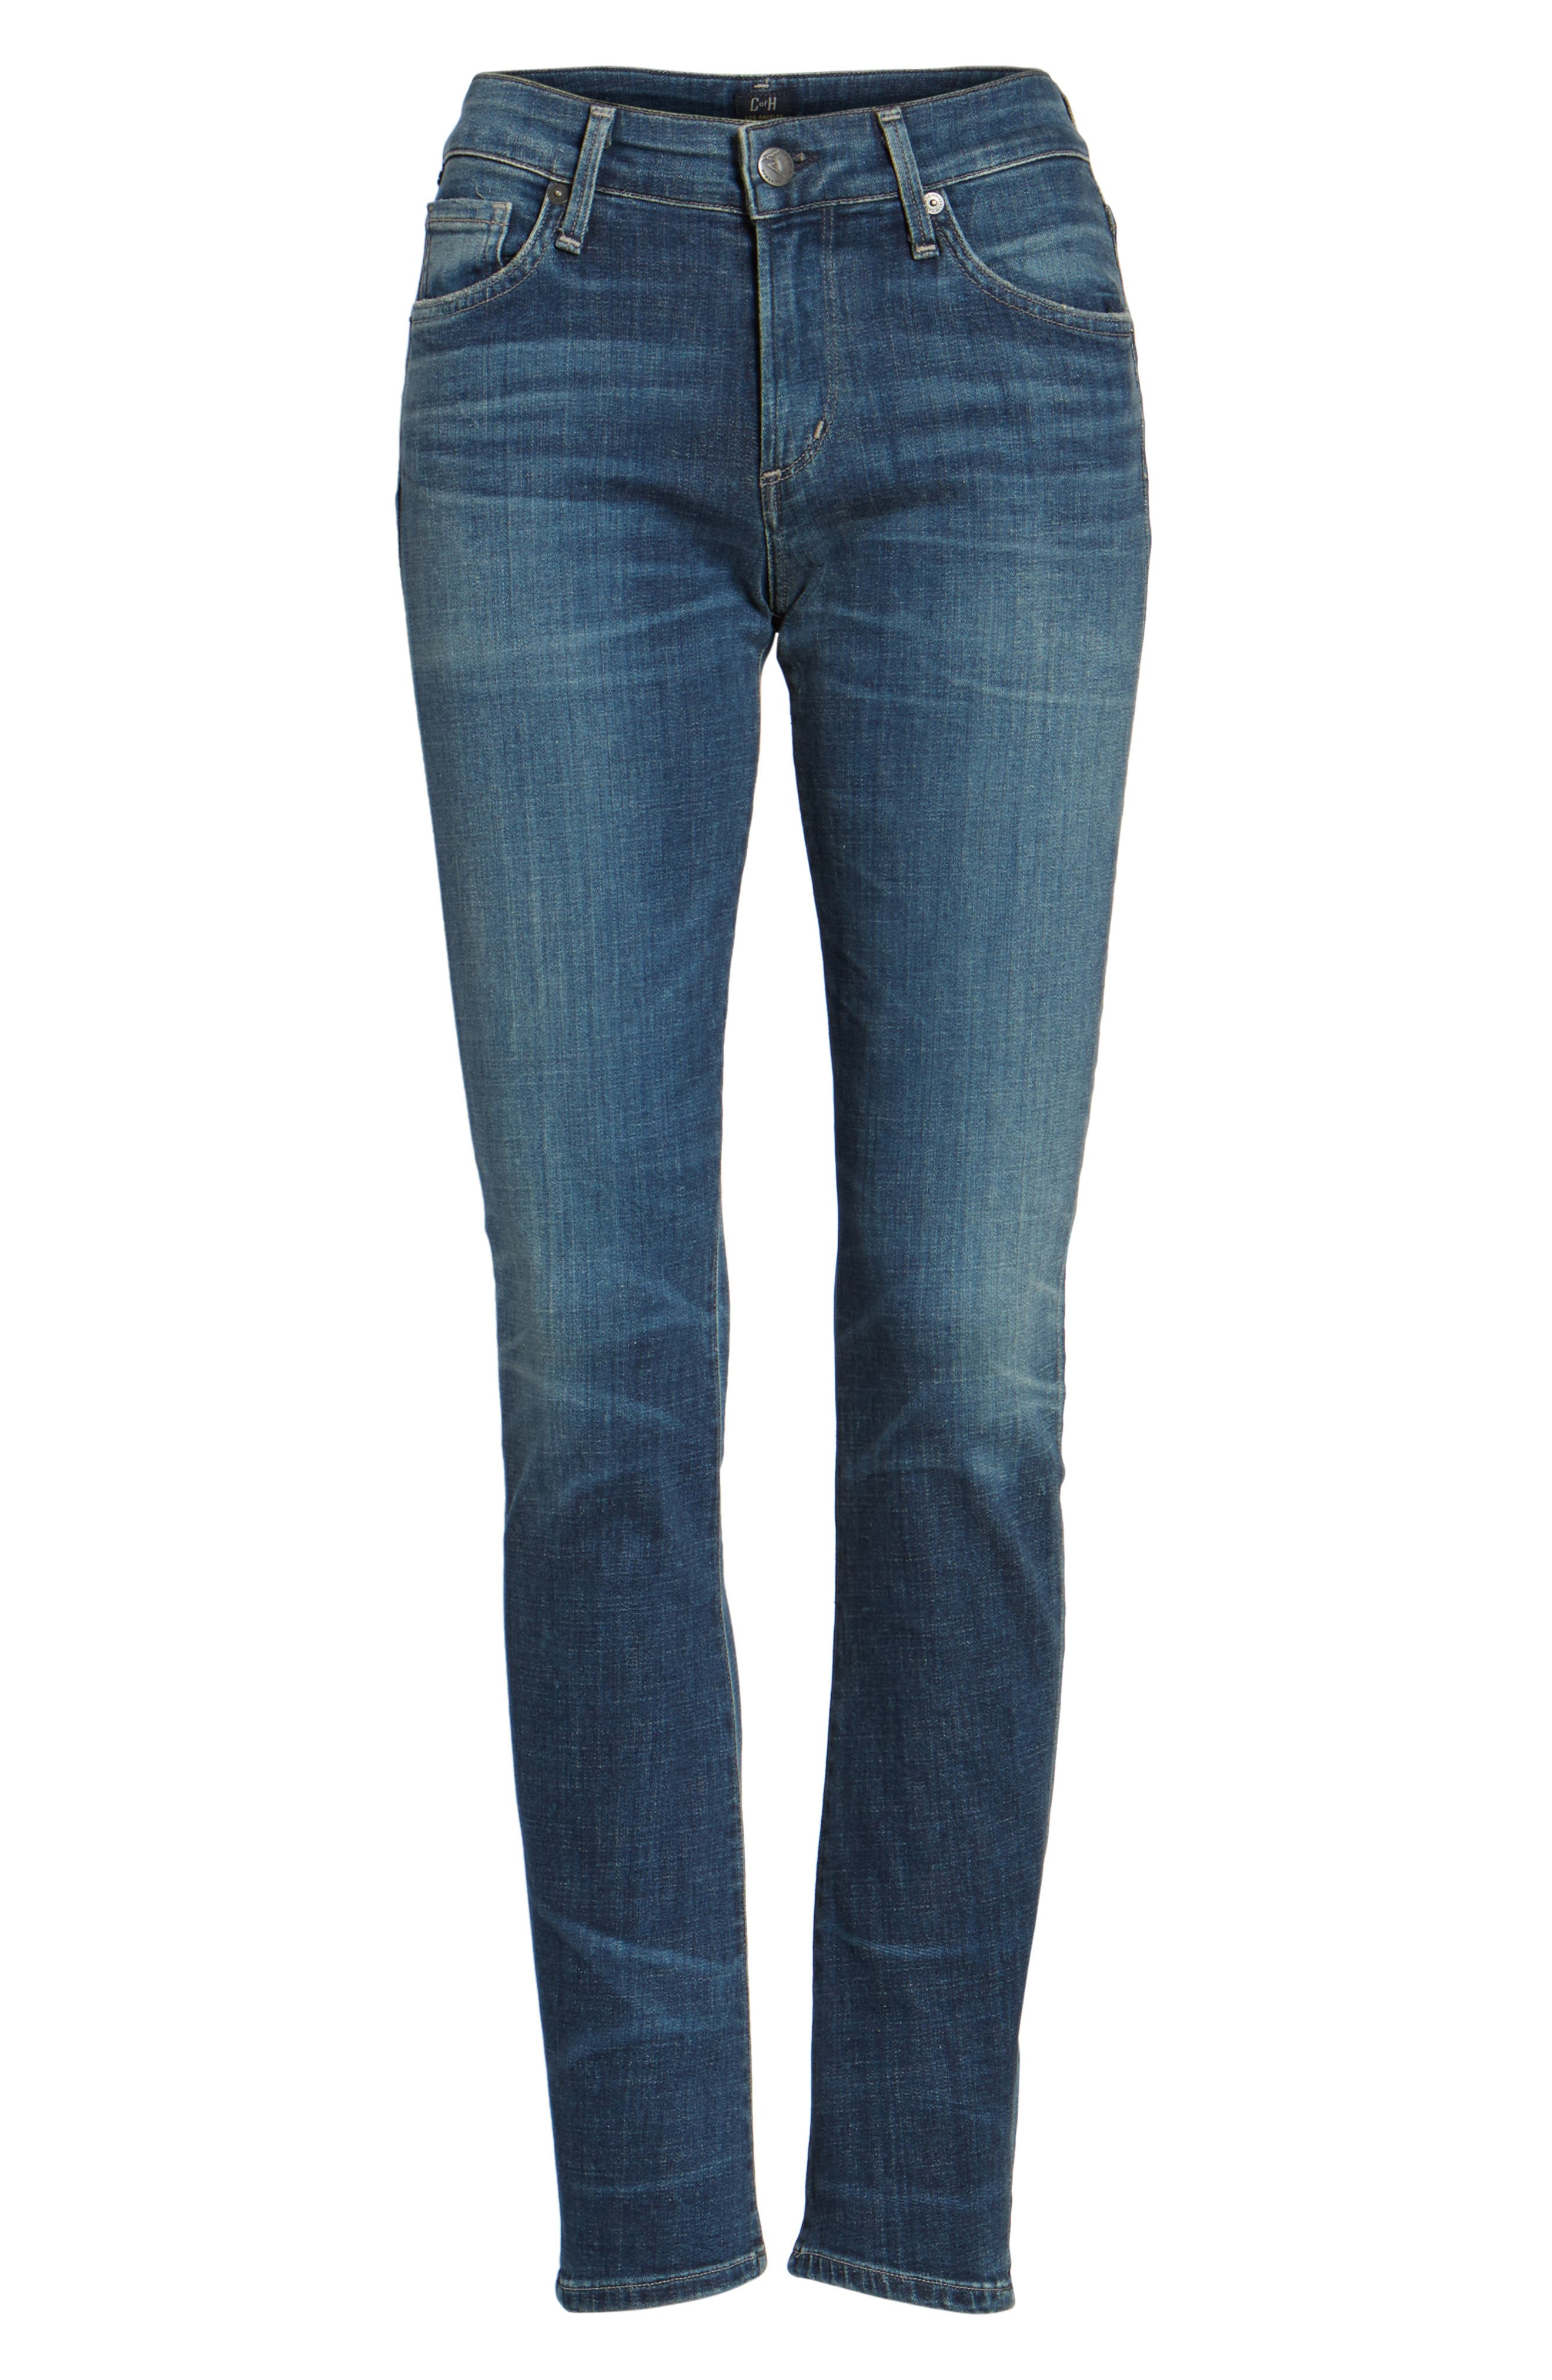 Avedon Ultra Skinny Jeans,                             Alternate thumbnail 6, color,                             455